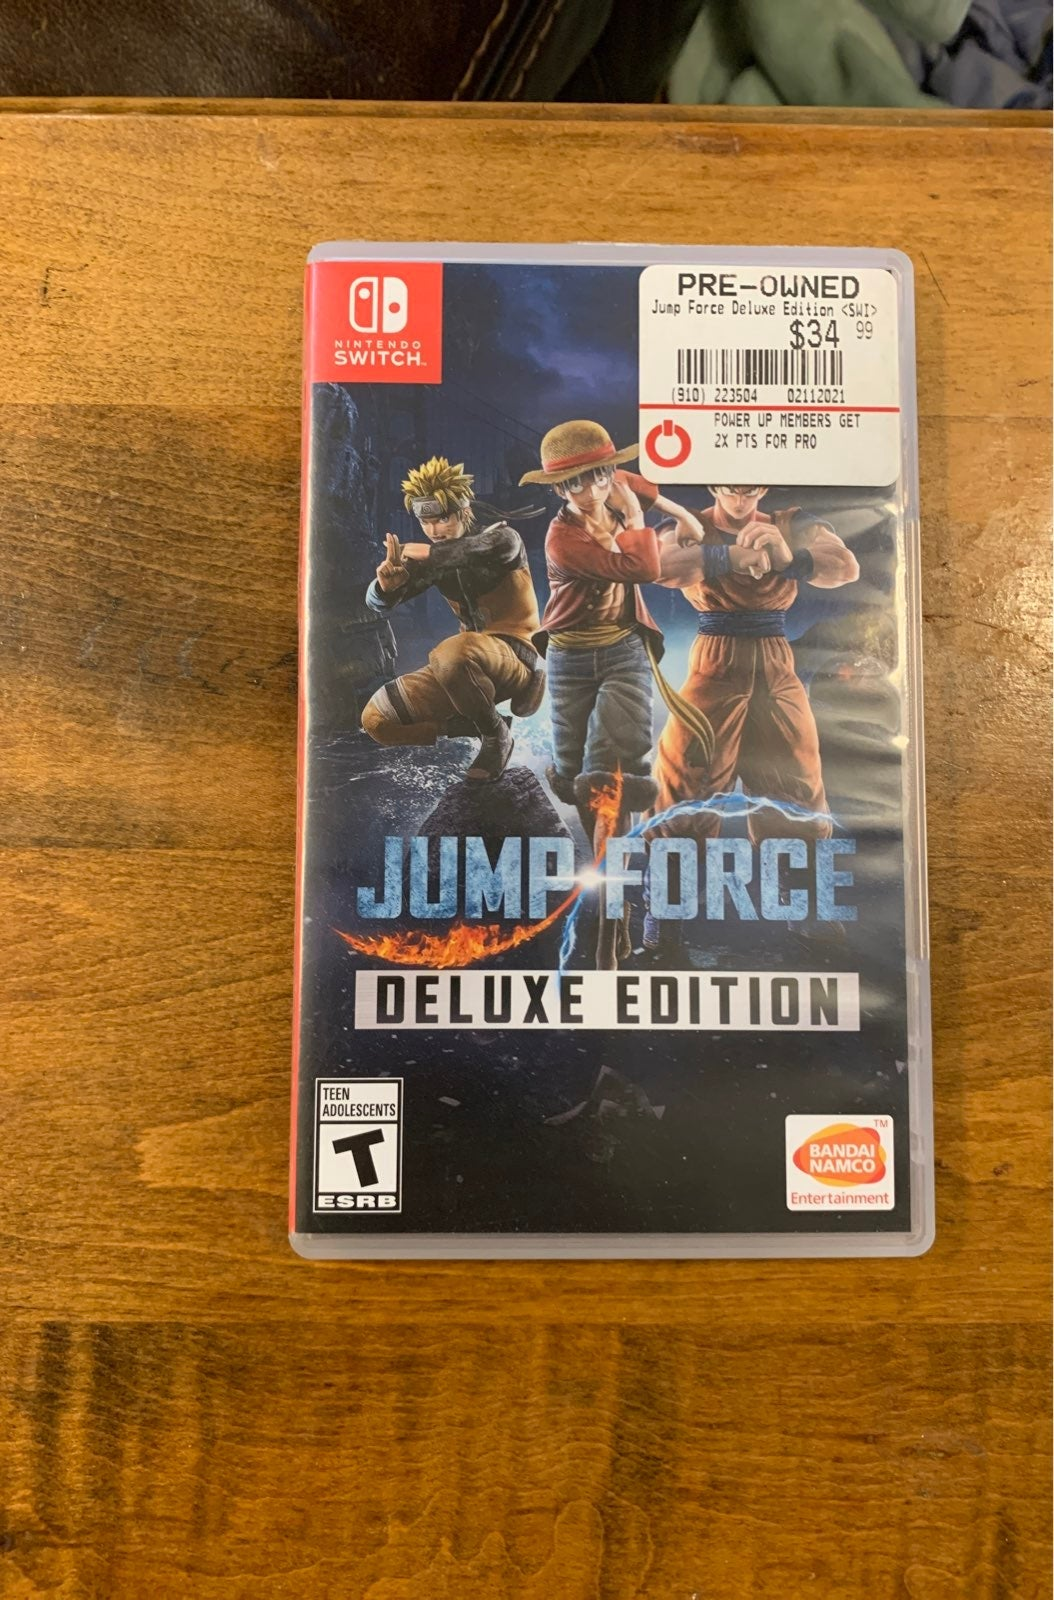 Jump force deluxe edition for Nintendo s